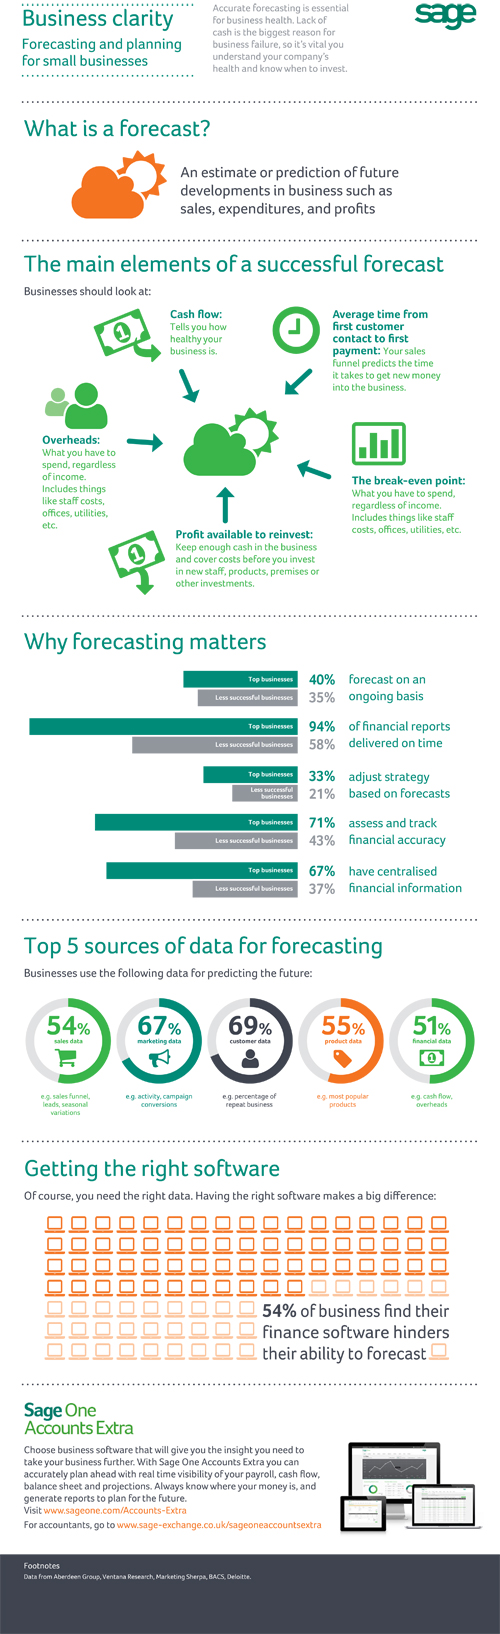 Forecasting and Planning for Small Business - Sage One infographic